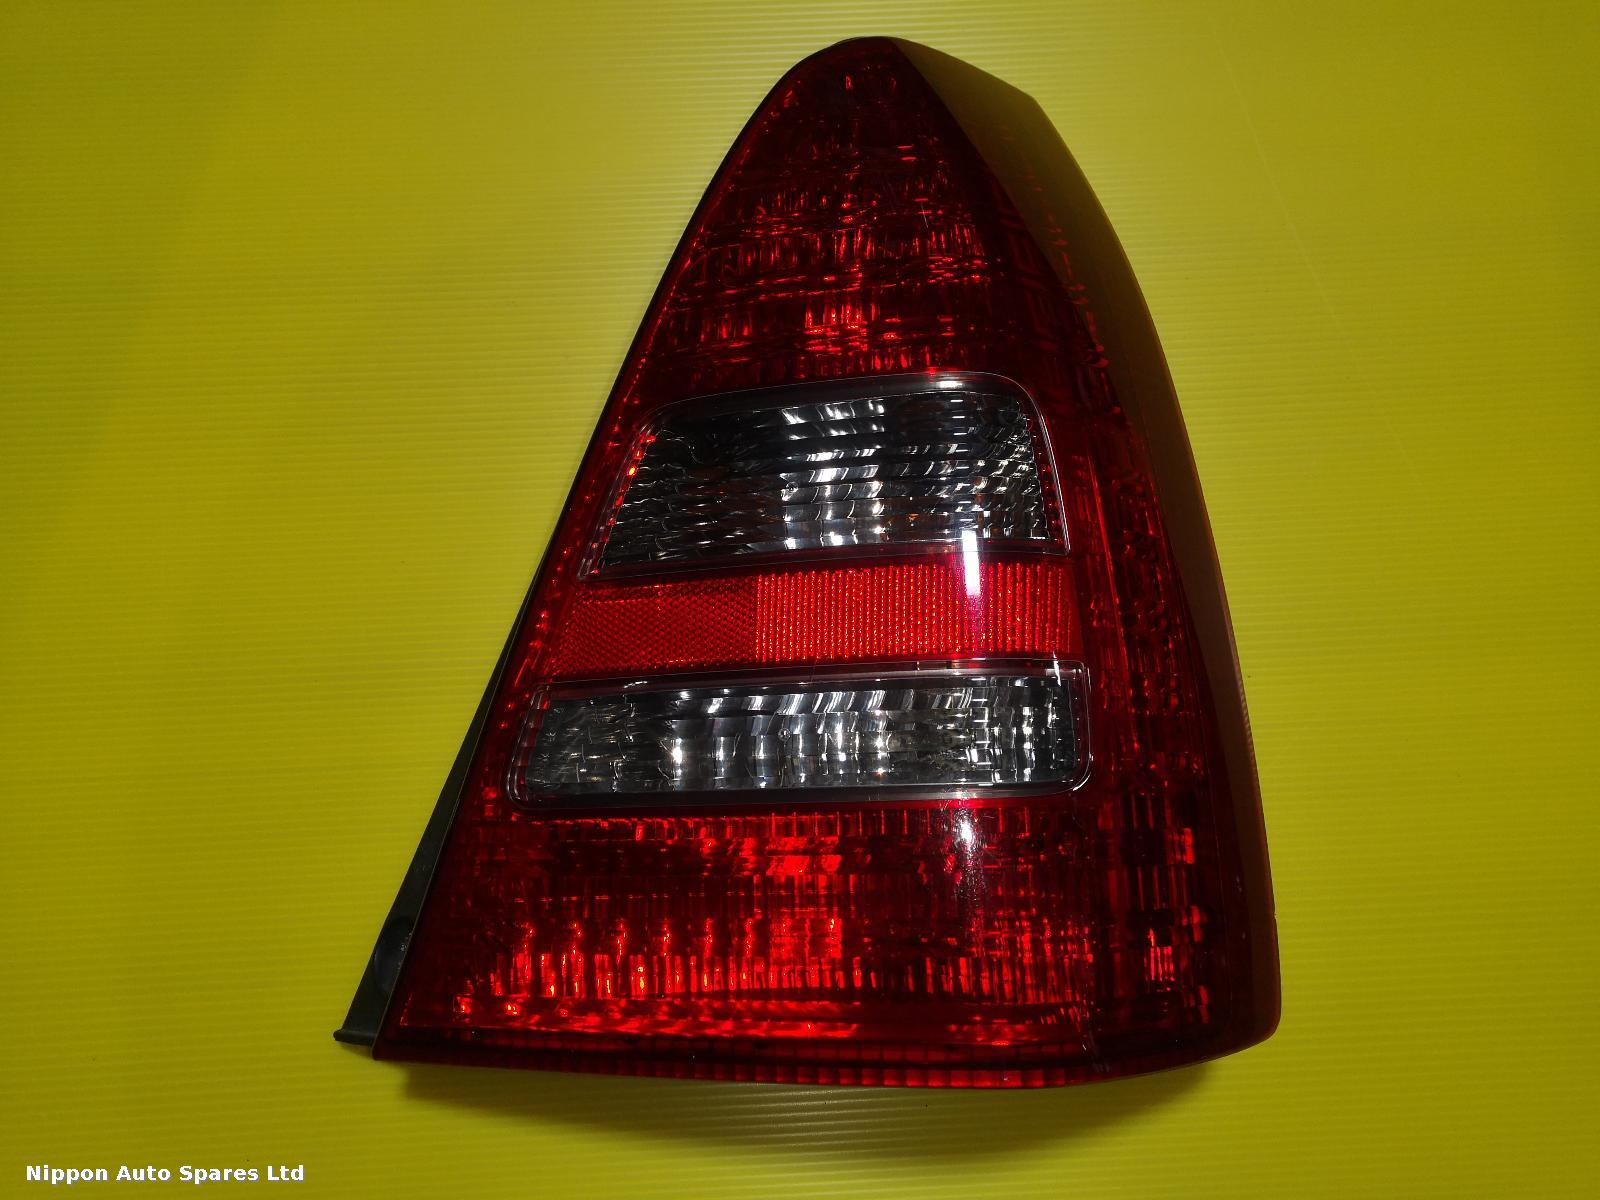 Subaru FORESTER R Taillight 2002-2004: 56524